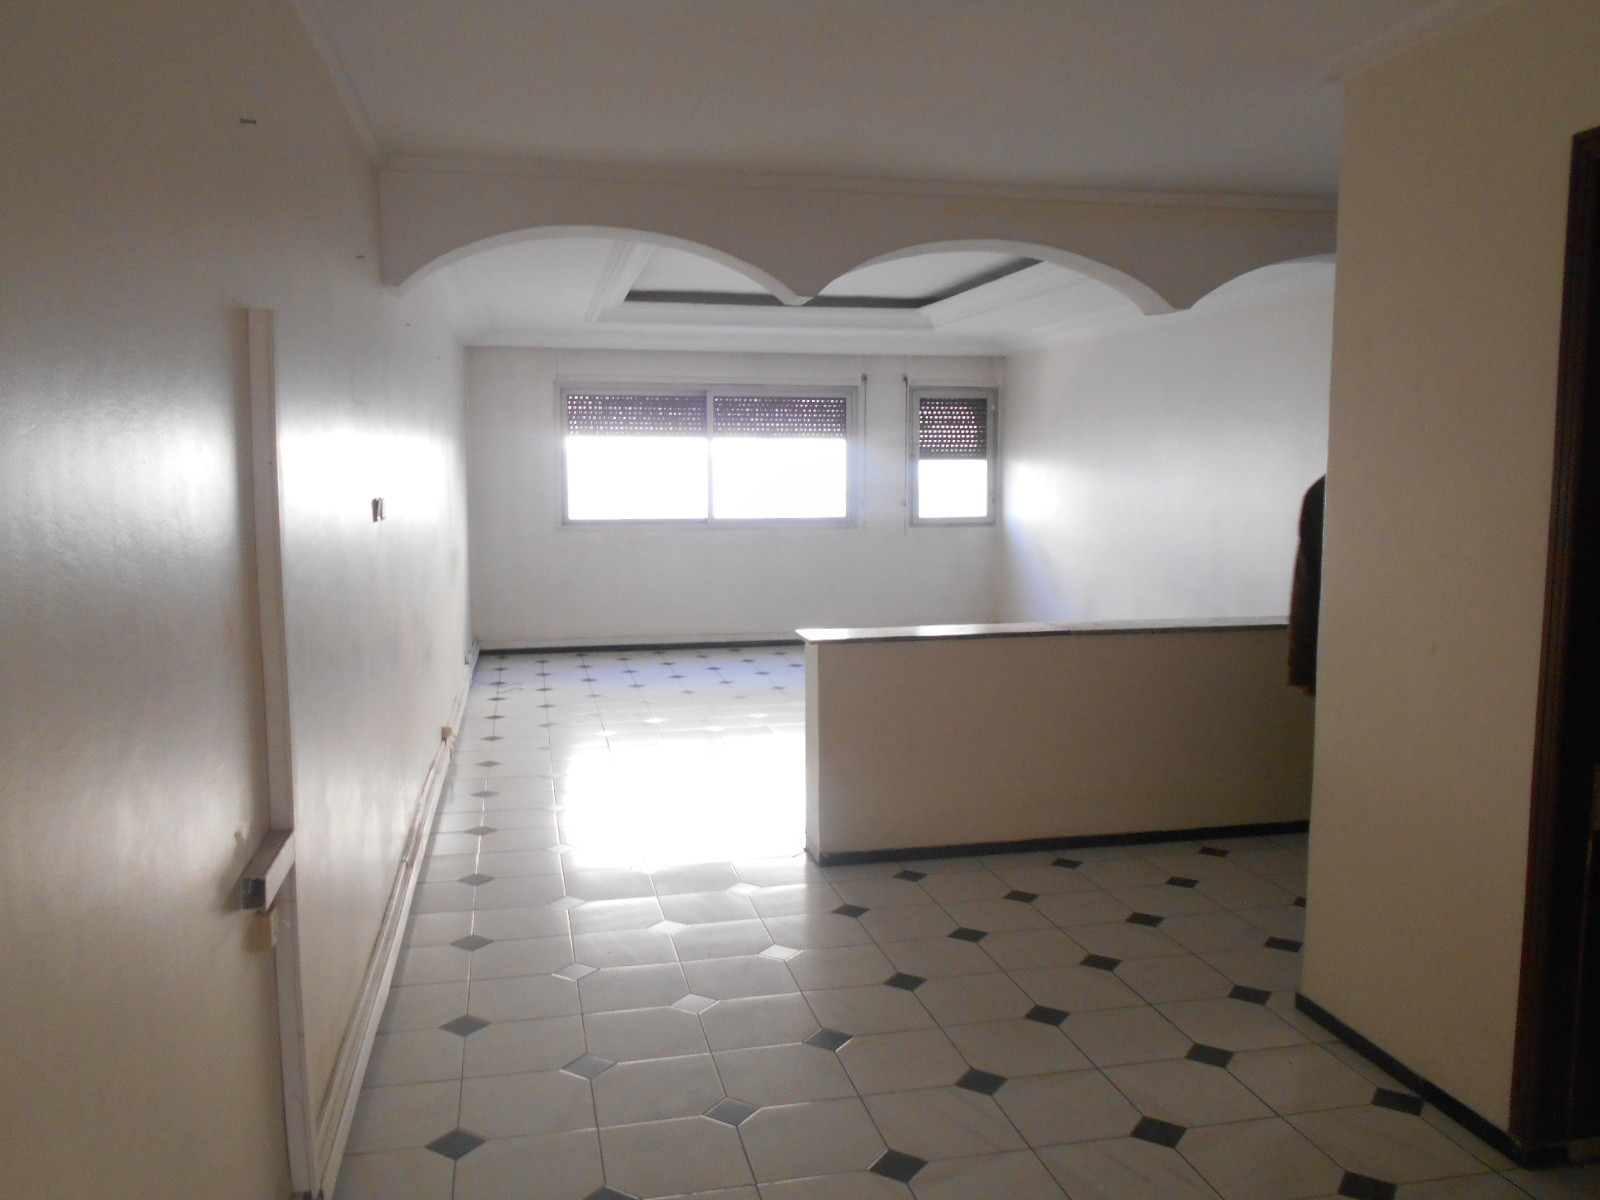 Vente <strong>Appartement</strong> Casablanca Gauthier <strong>159 m2</strong>